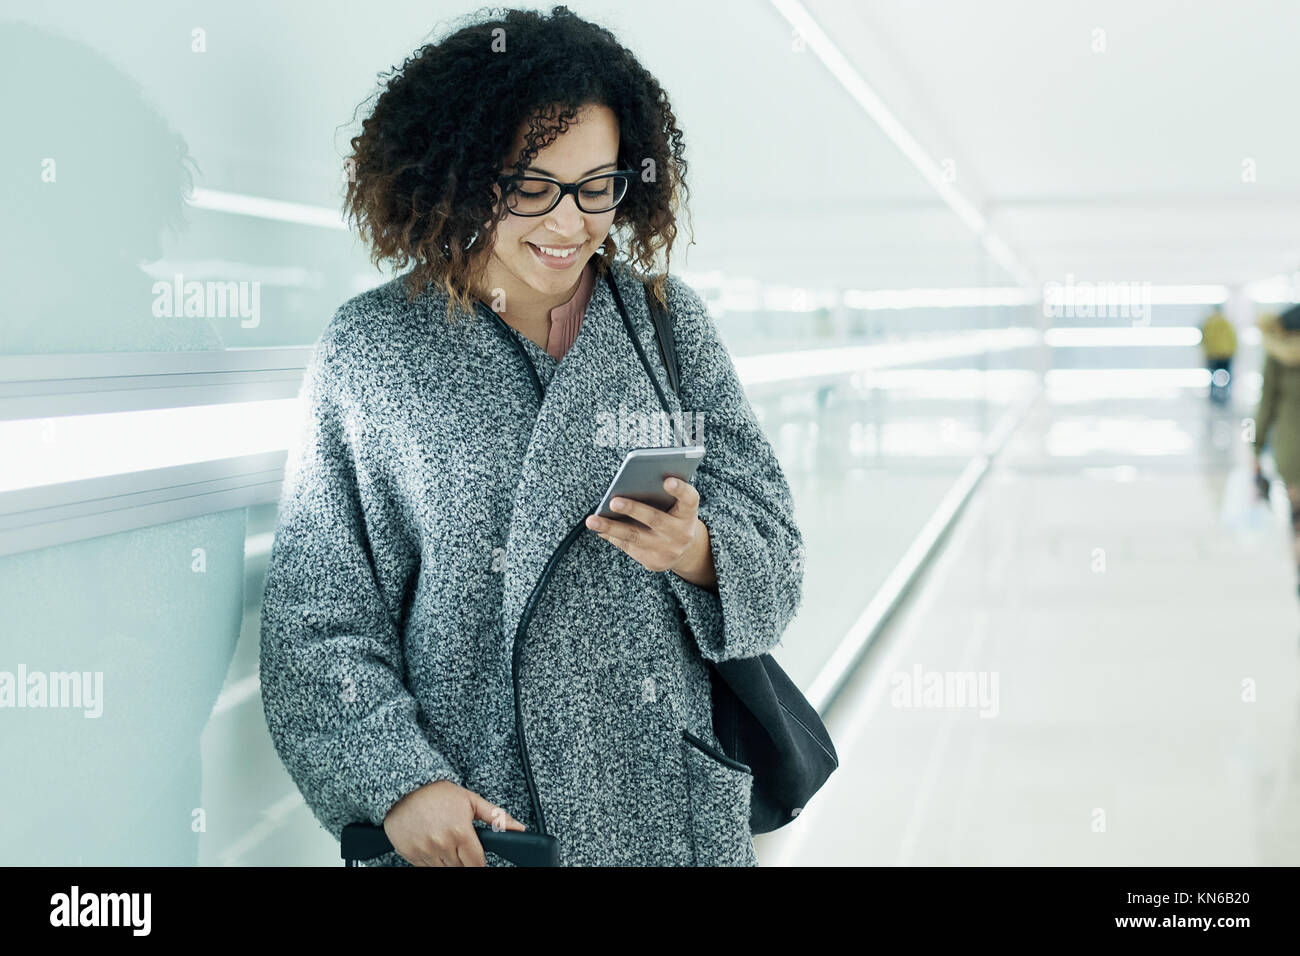 Afro american girl texting and using a smartphone - Stock Image